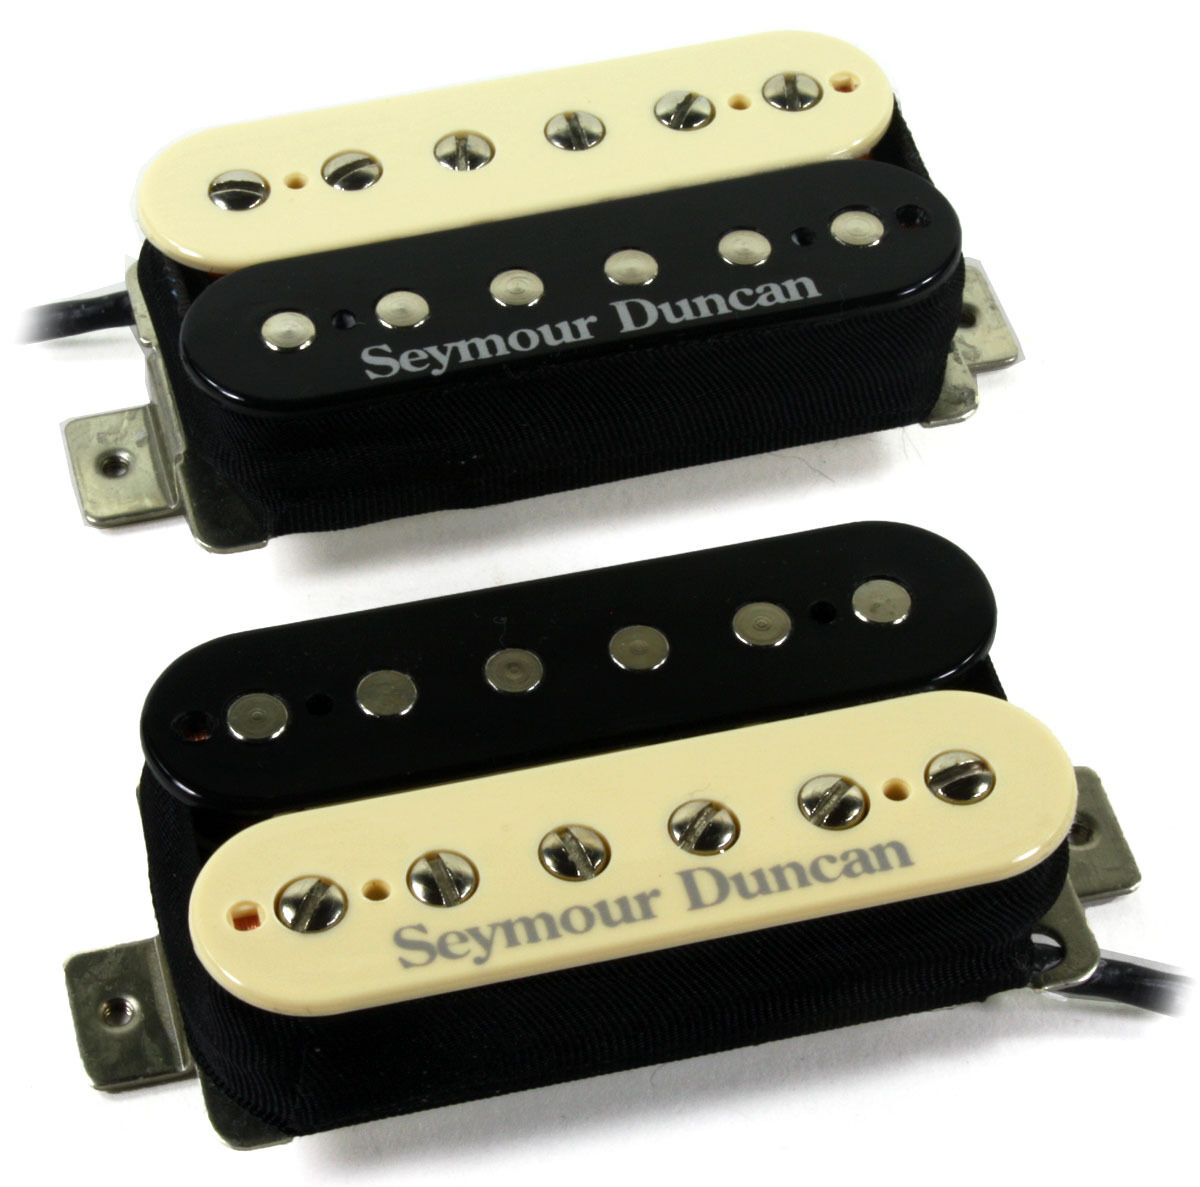 Seymour Duncan SH-18 Whole Lotta Humbucker Bridge and Neck Pickup Set Nickel